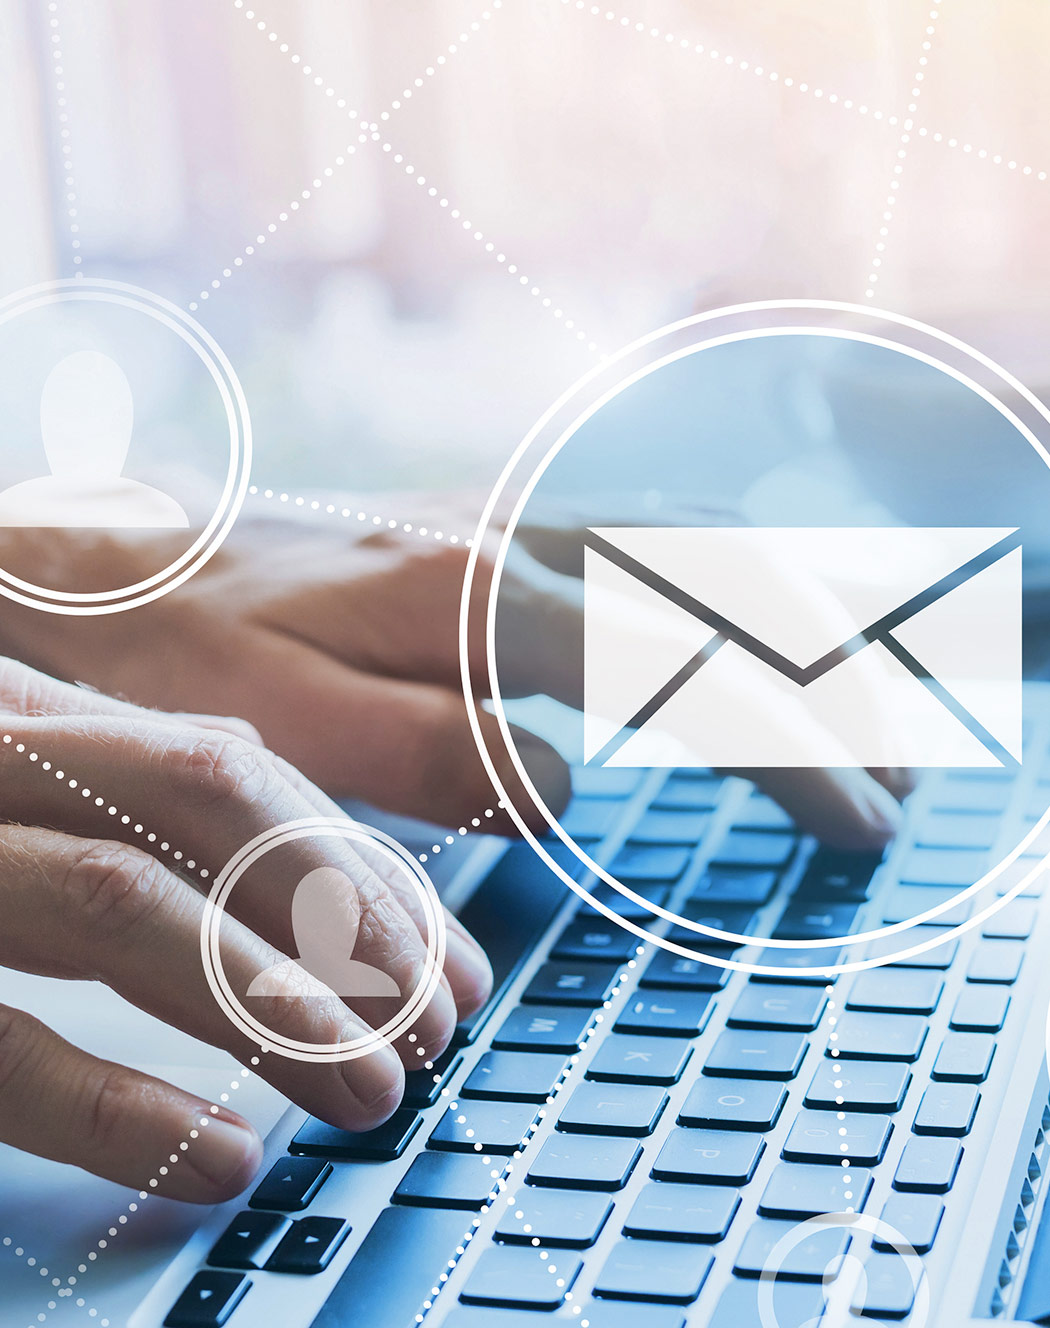 Email Engagement Keeps Rising